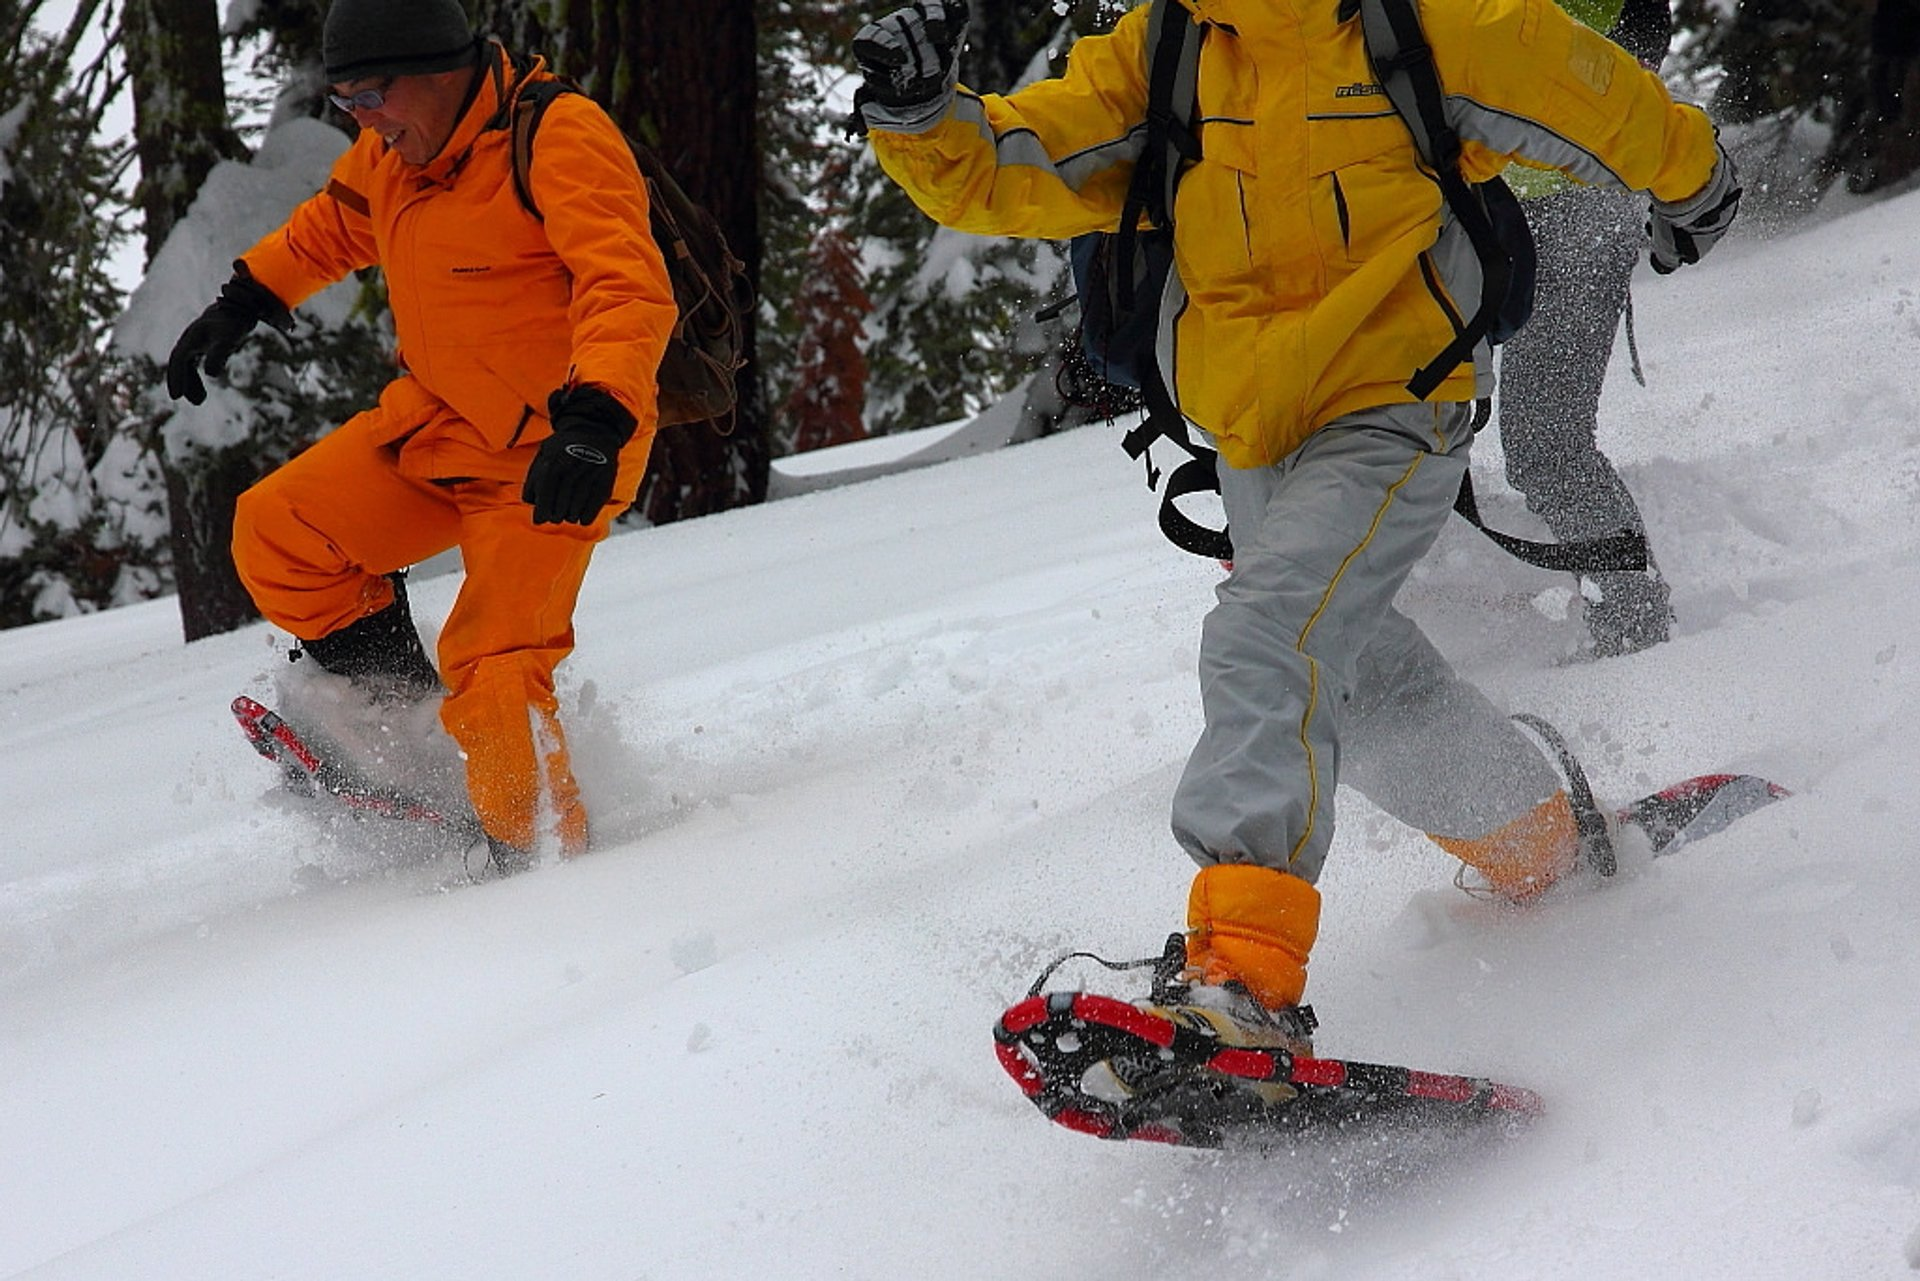 Snowshoeing in Mariposa grove 2020